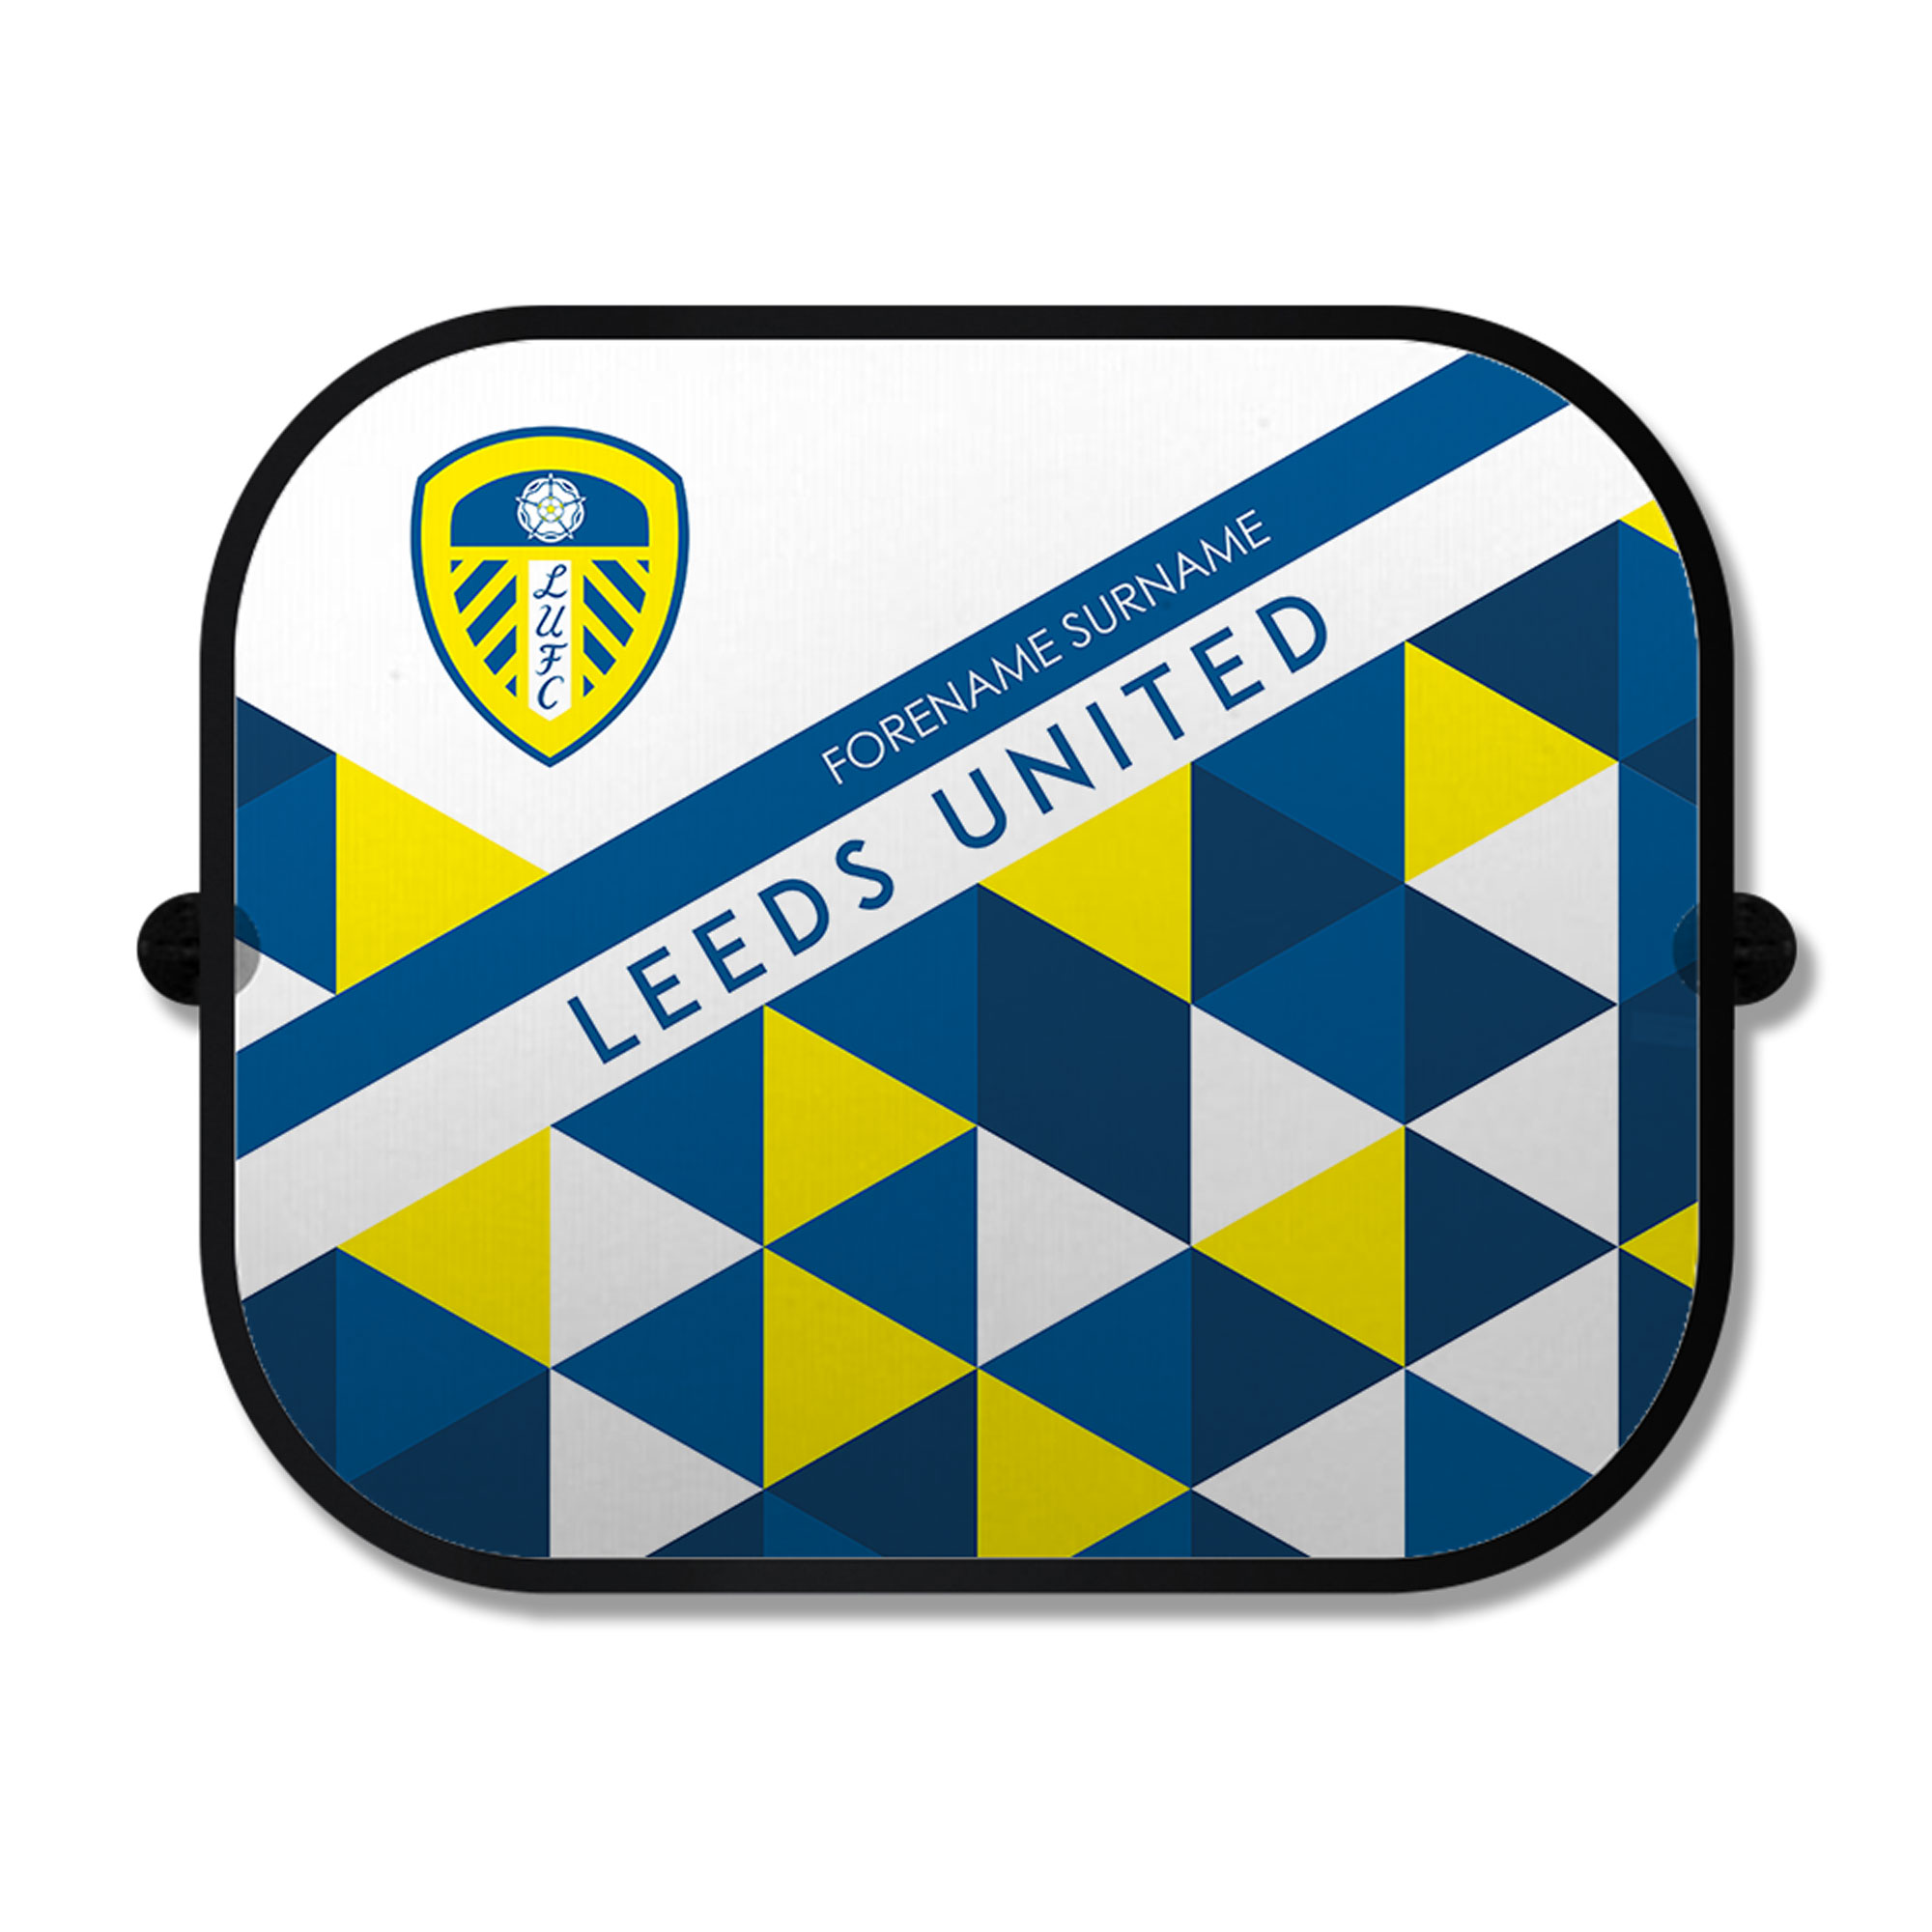 Leeds United FC Patterned Car Sunshade